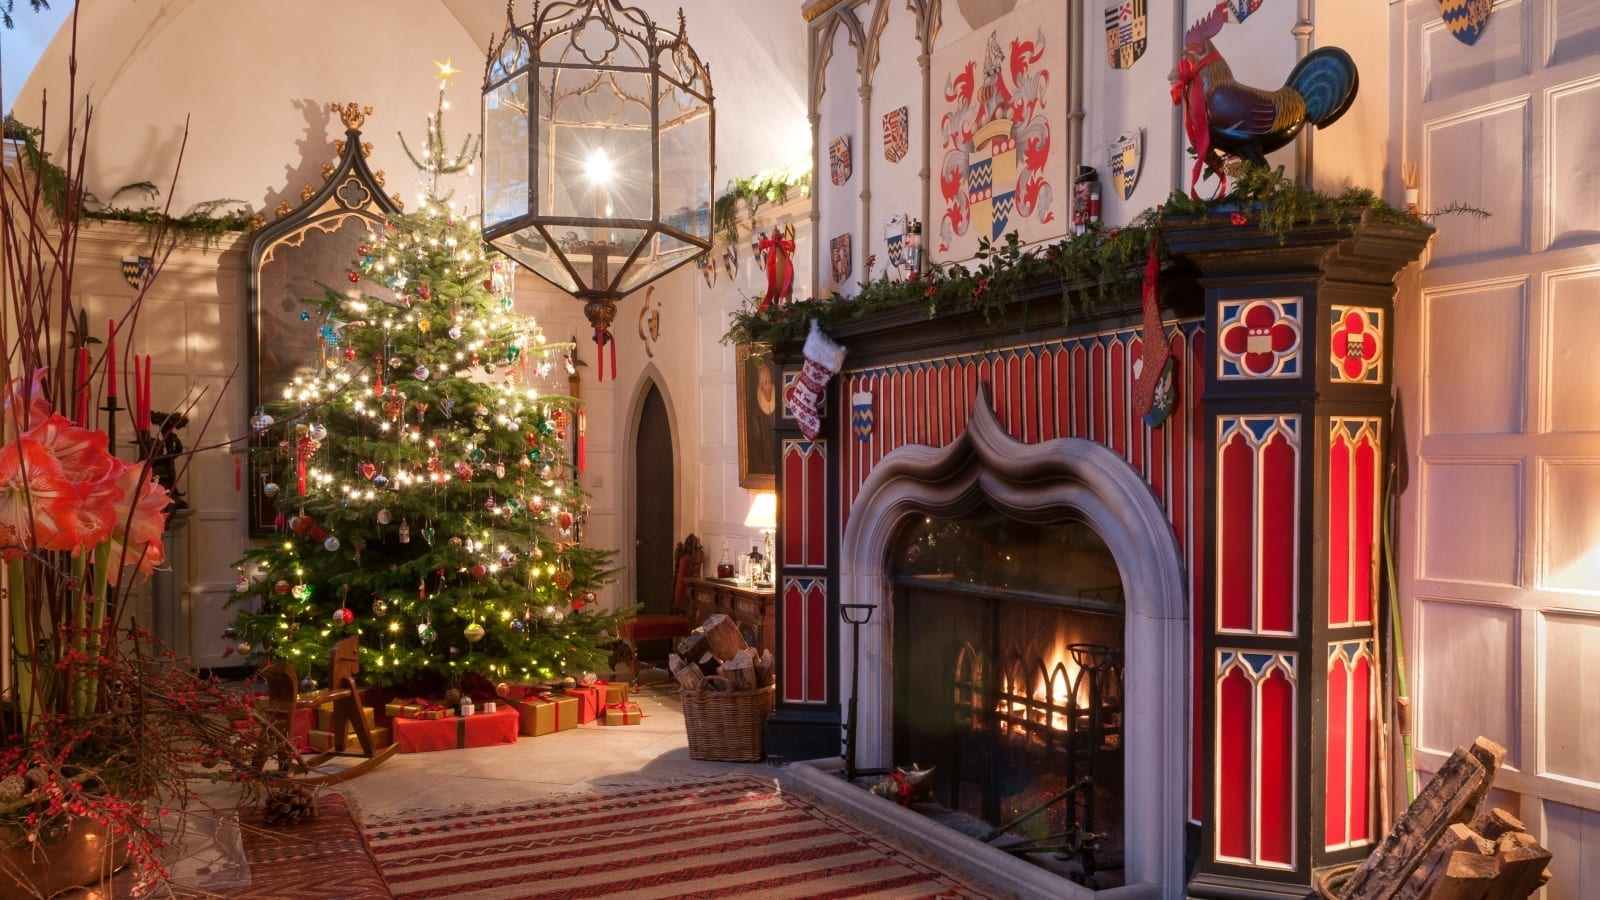 25 days of christmas in oxfordshire 2017 experience oxfordshire